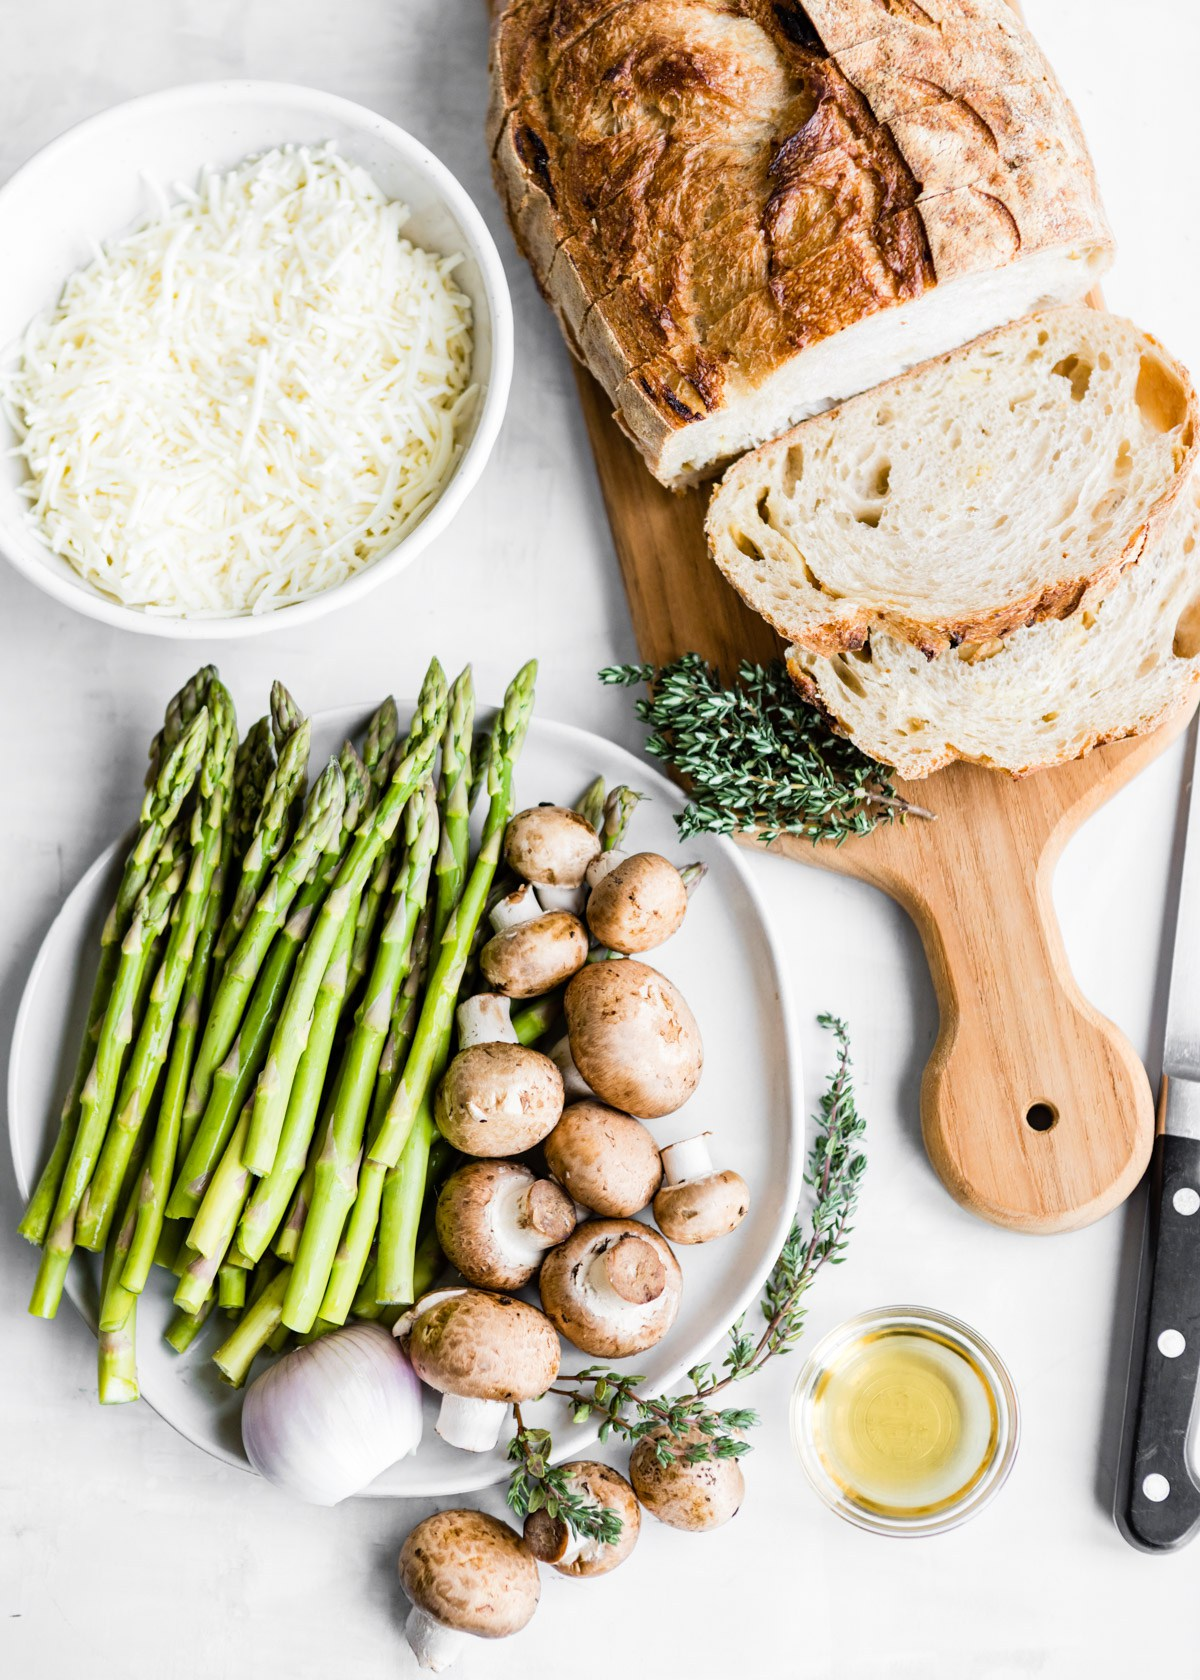 Asparagus-Mushroom-Open-Faced-Sandwiches.jpg